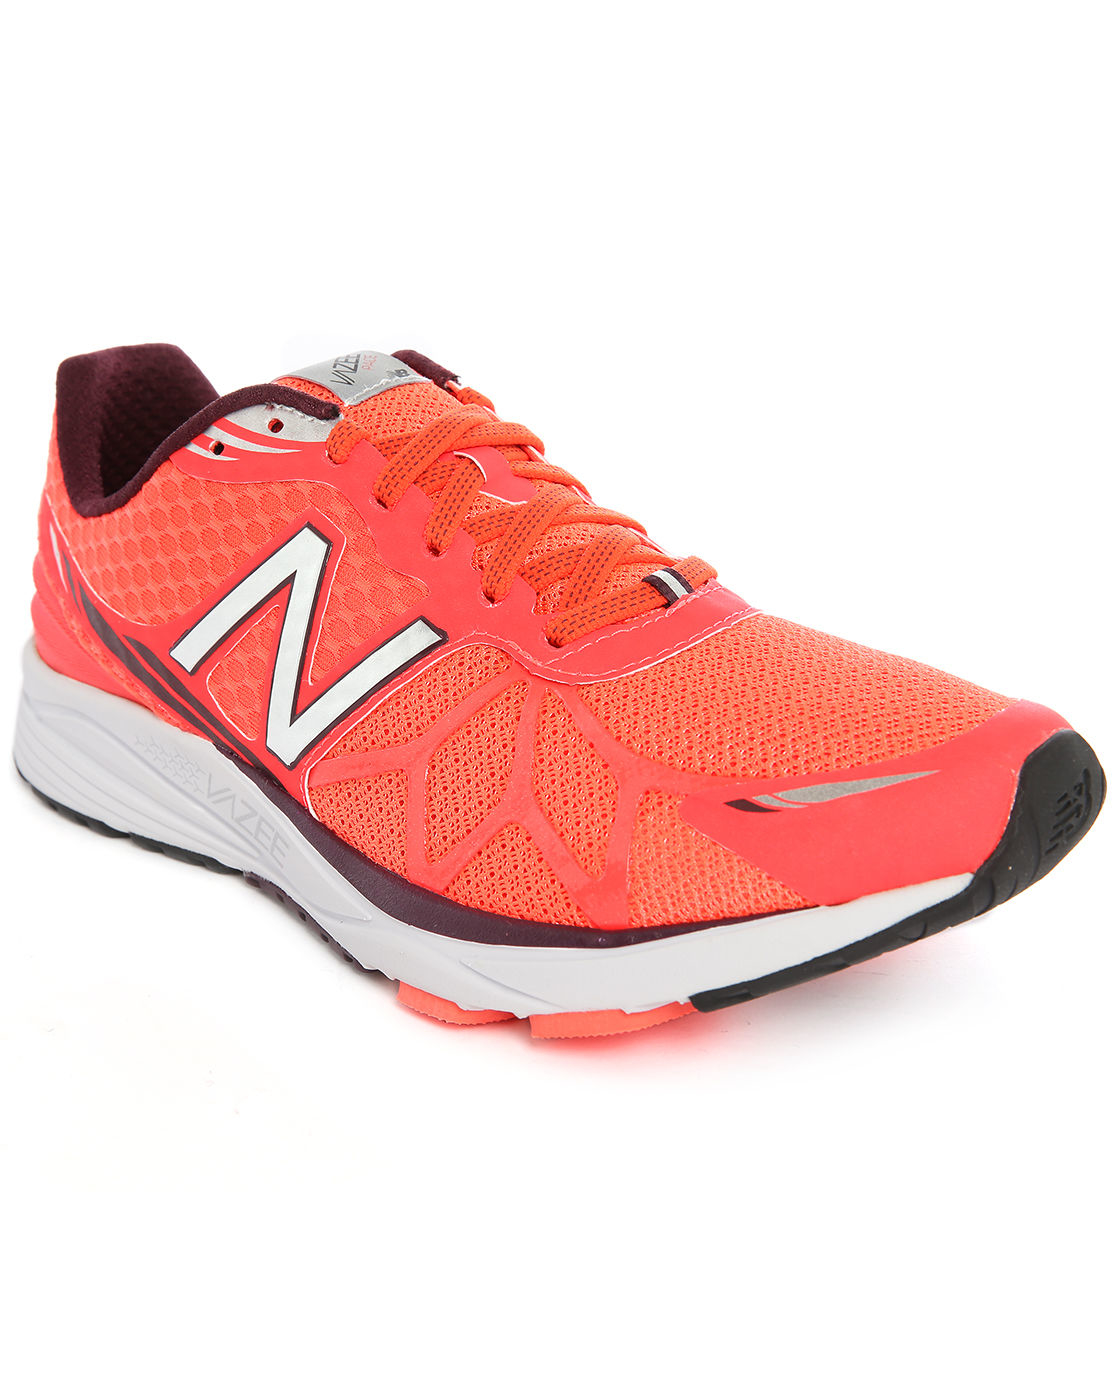 Orange Pacé New Balance Running Pace Orange-white Mesh Trainers In